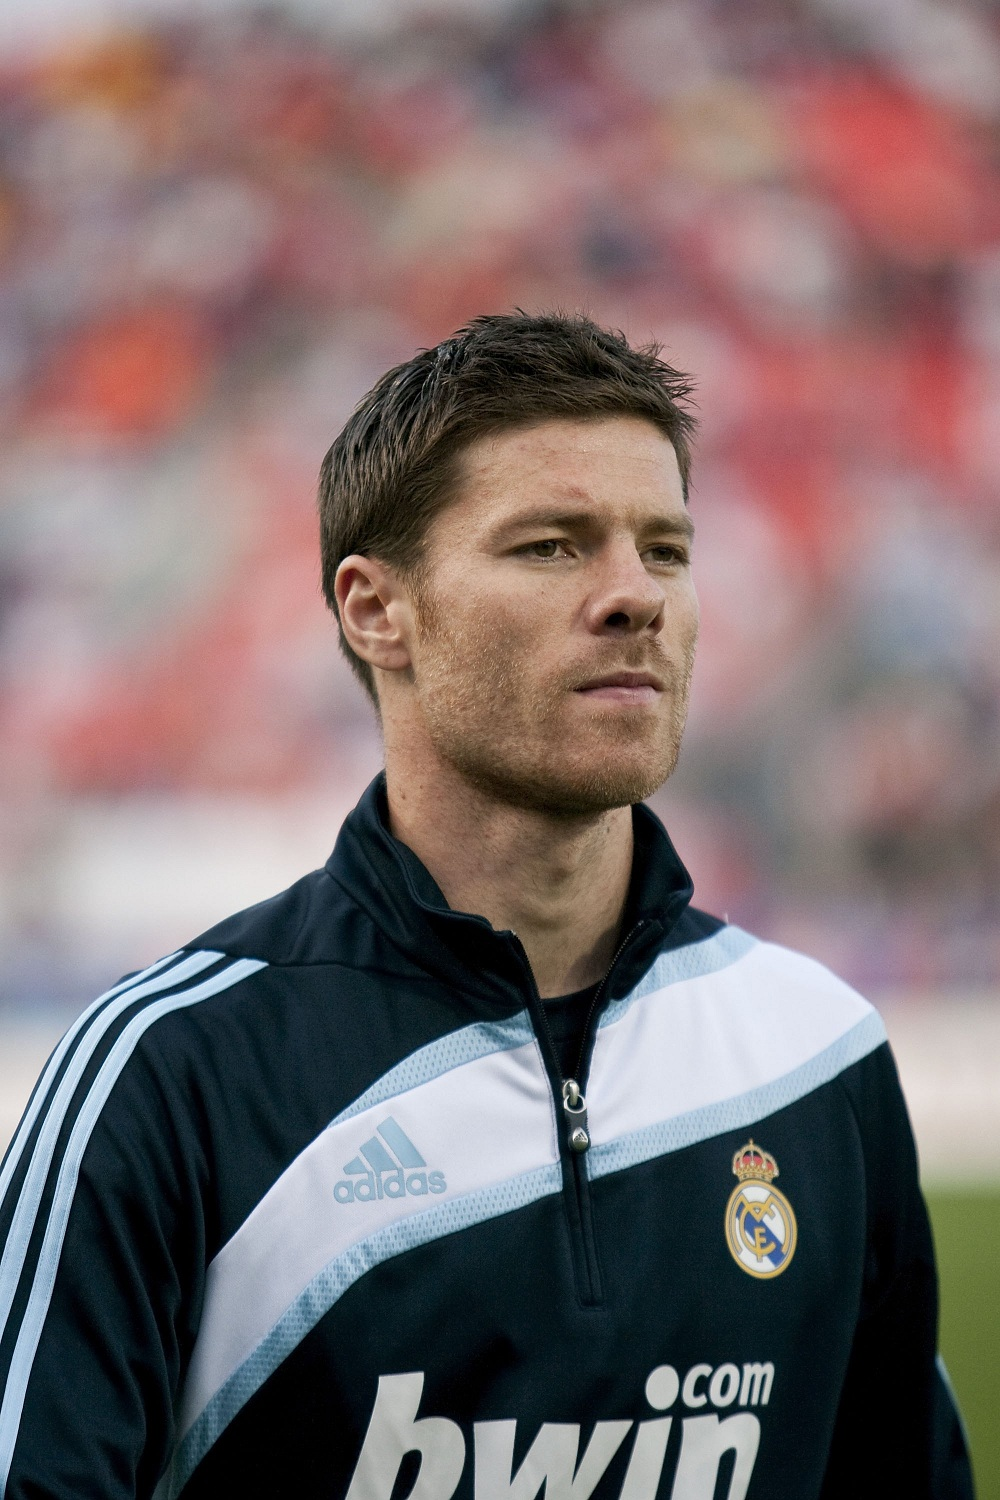 Xabi Alonso photo gallery high quality pics of Xabi Alonso